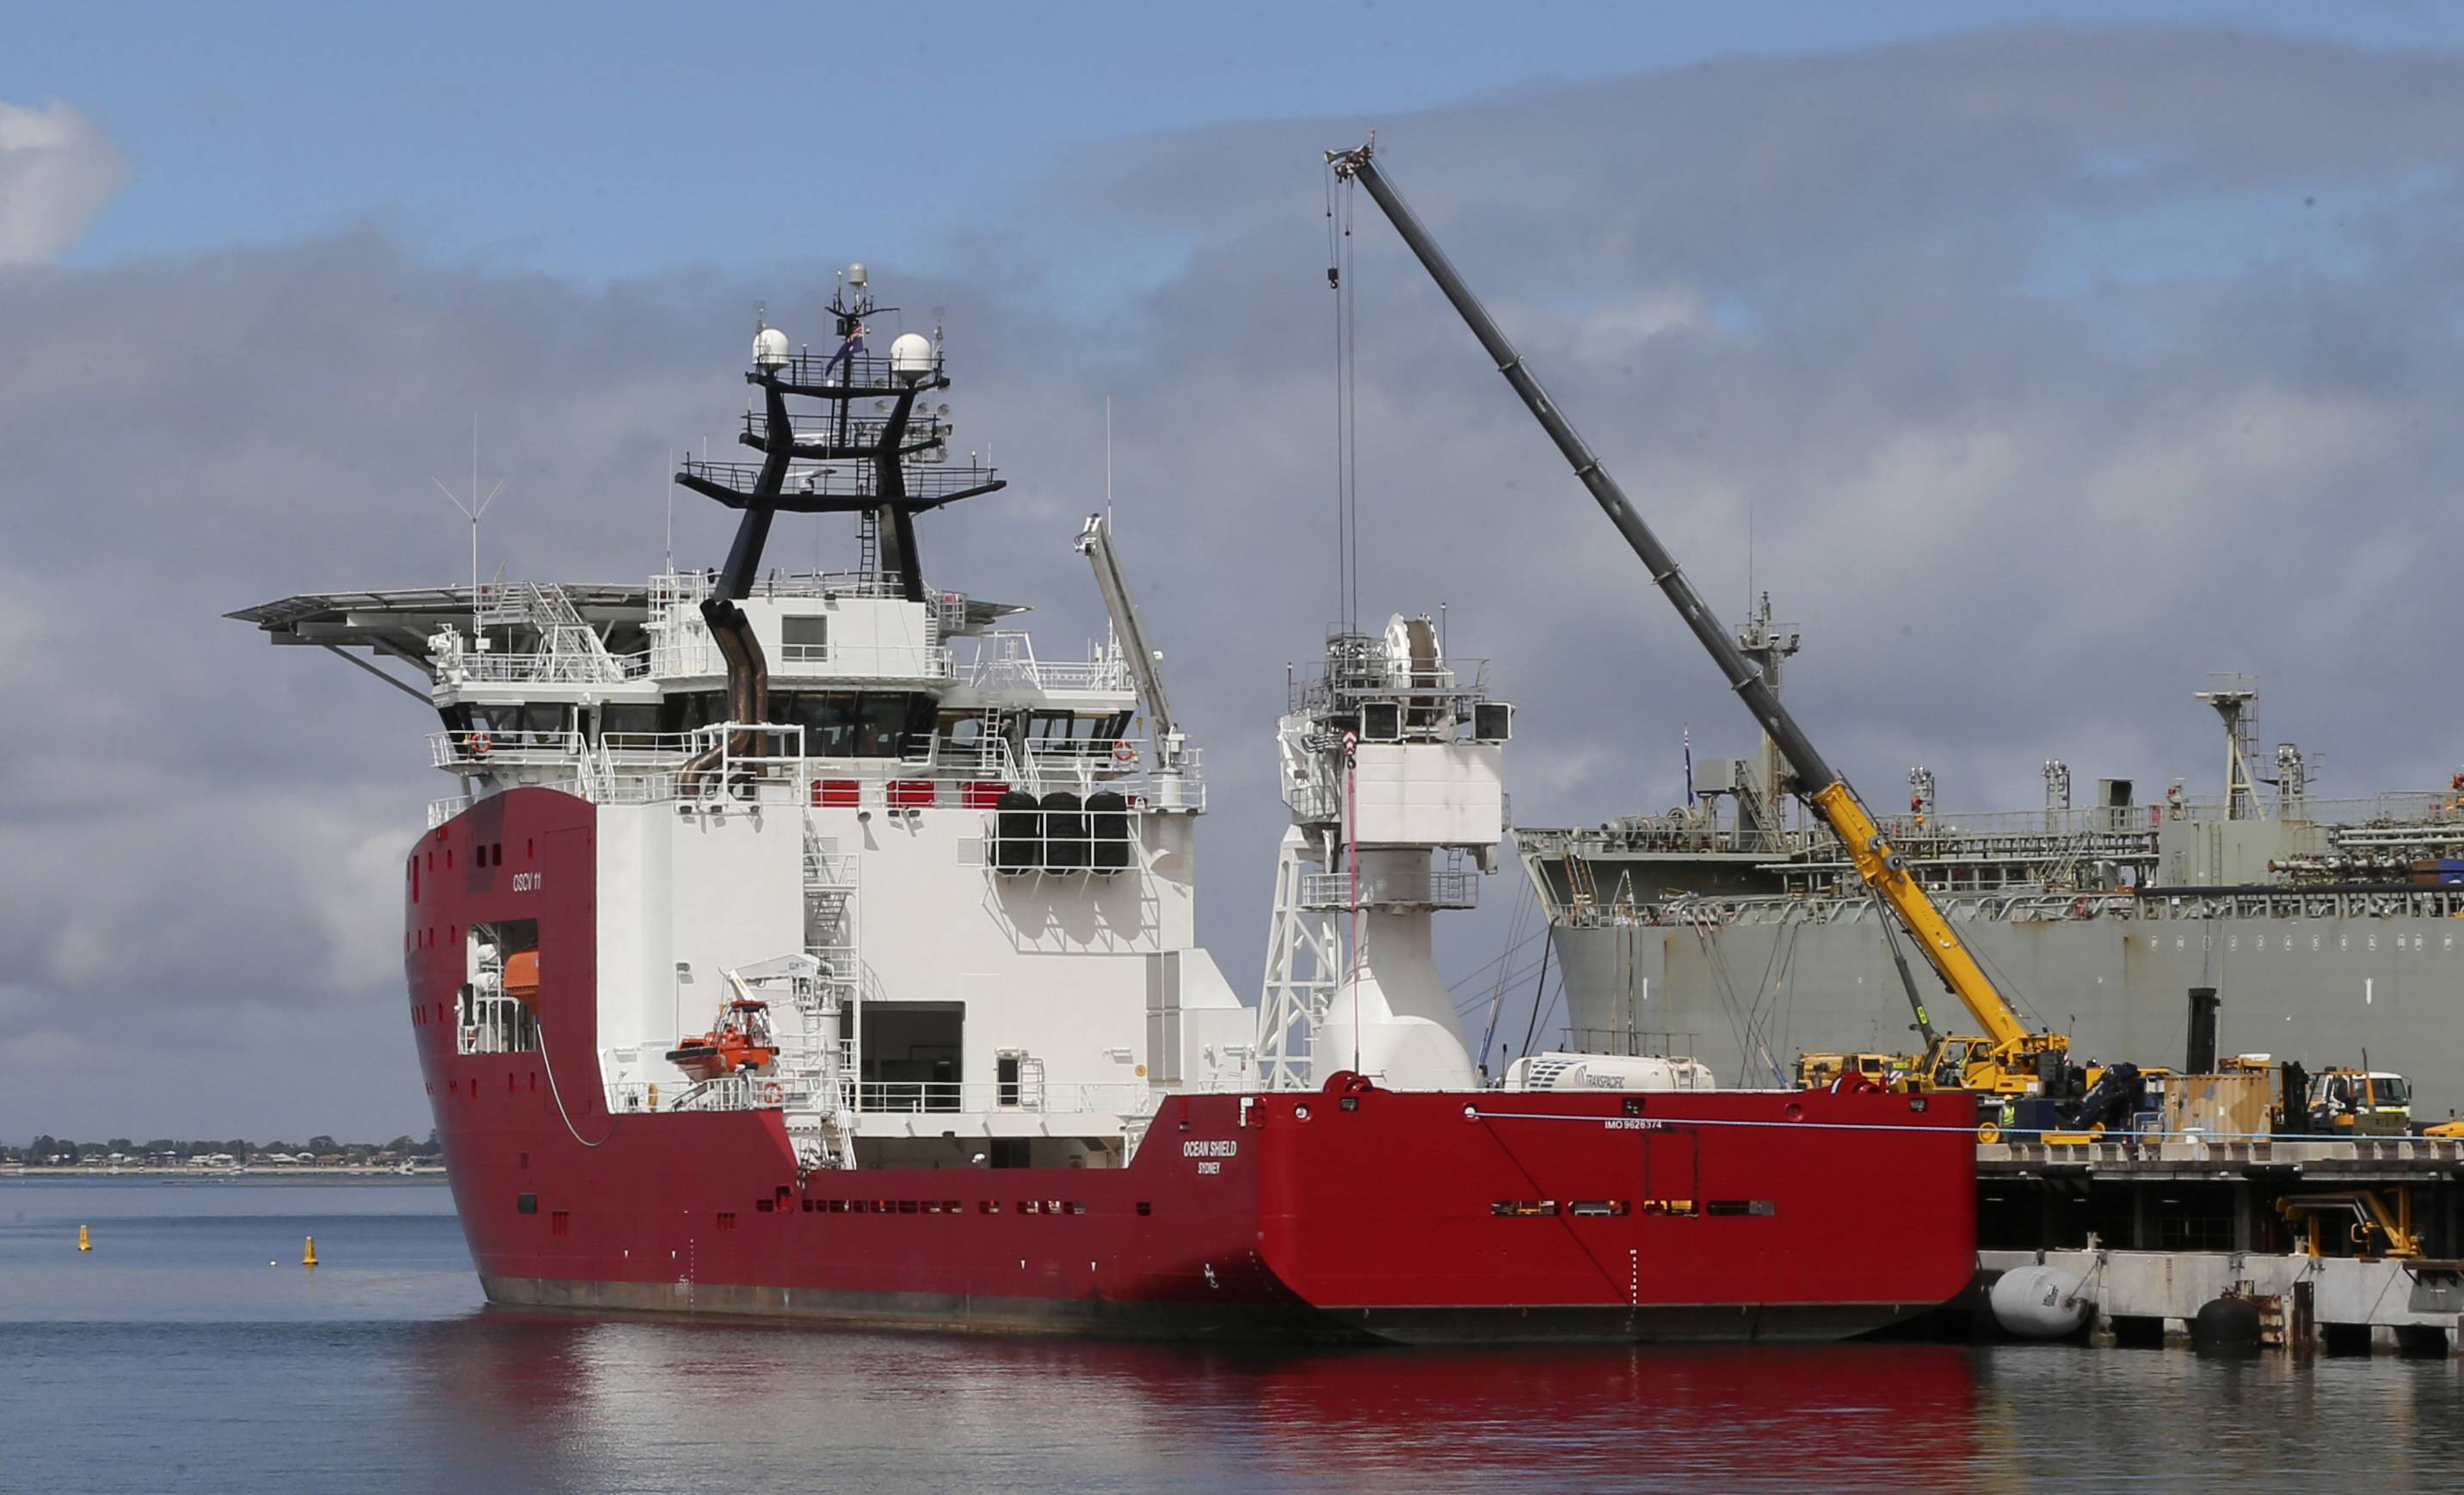 Australian navy ship Ocean Shield was fitted with a towed pinger locator to aid in the search for missing Malaysia Airlines Flight MH370. Investigators searching for the missing Malaysian jet have concluded an area where acoustic signals were detected is not the final resting place of the plane after an unmanned submersible found no trace of it, the search coordinator said Thursday.